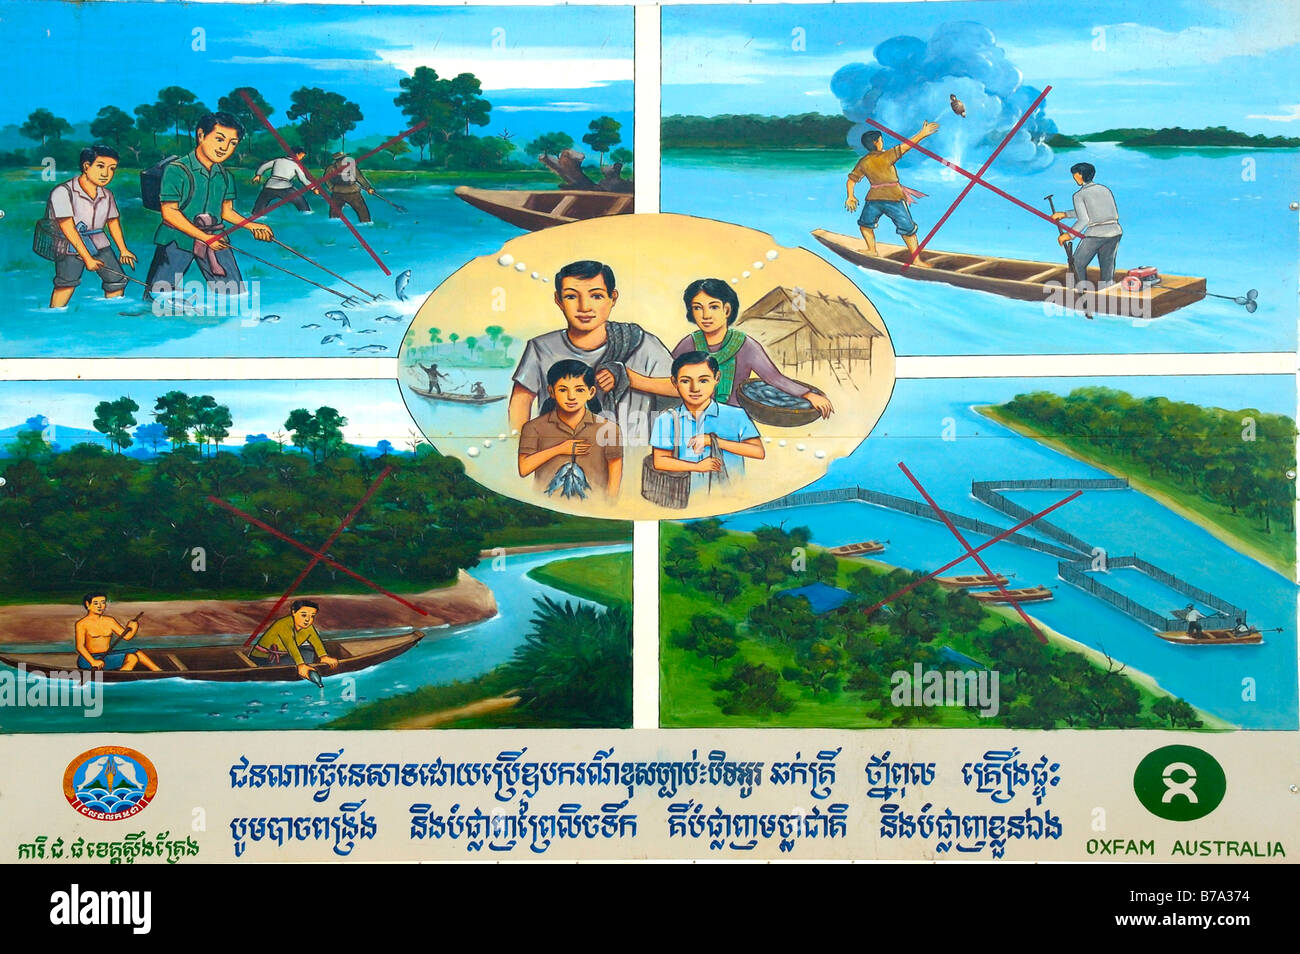 Development aid, Oxfam placard for sustainability of fisheries and water, Stung Treng, Cambodia, South Asia Stock Photo